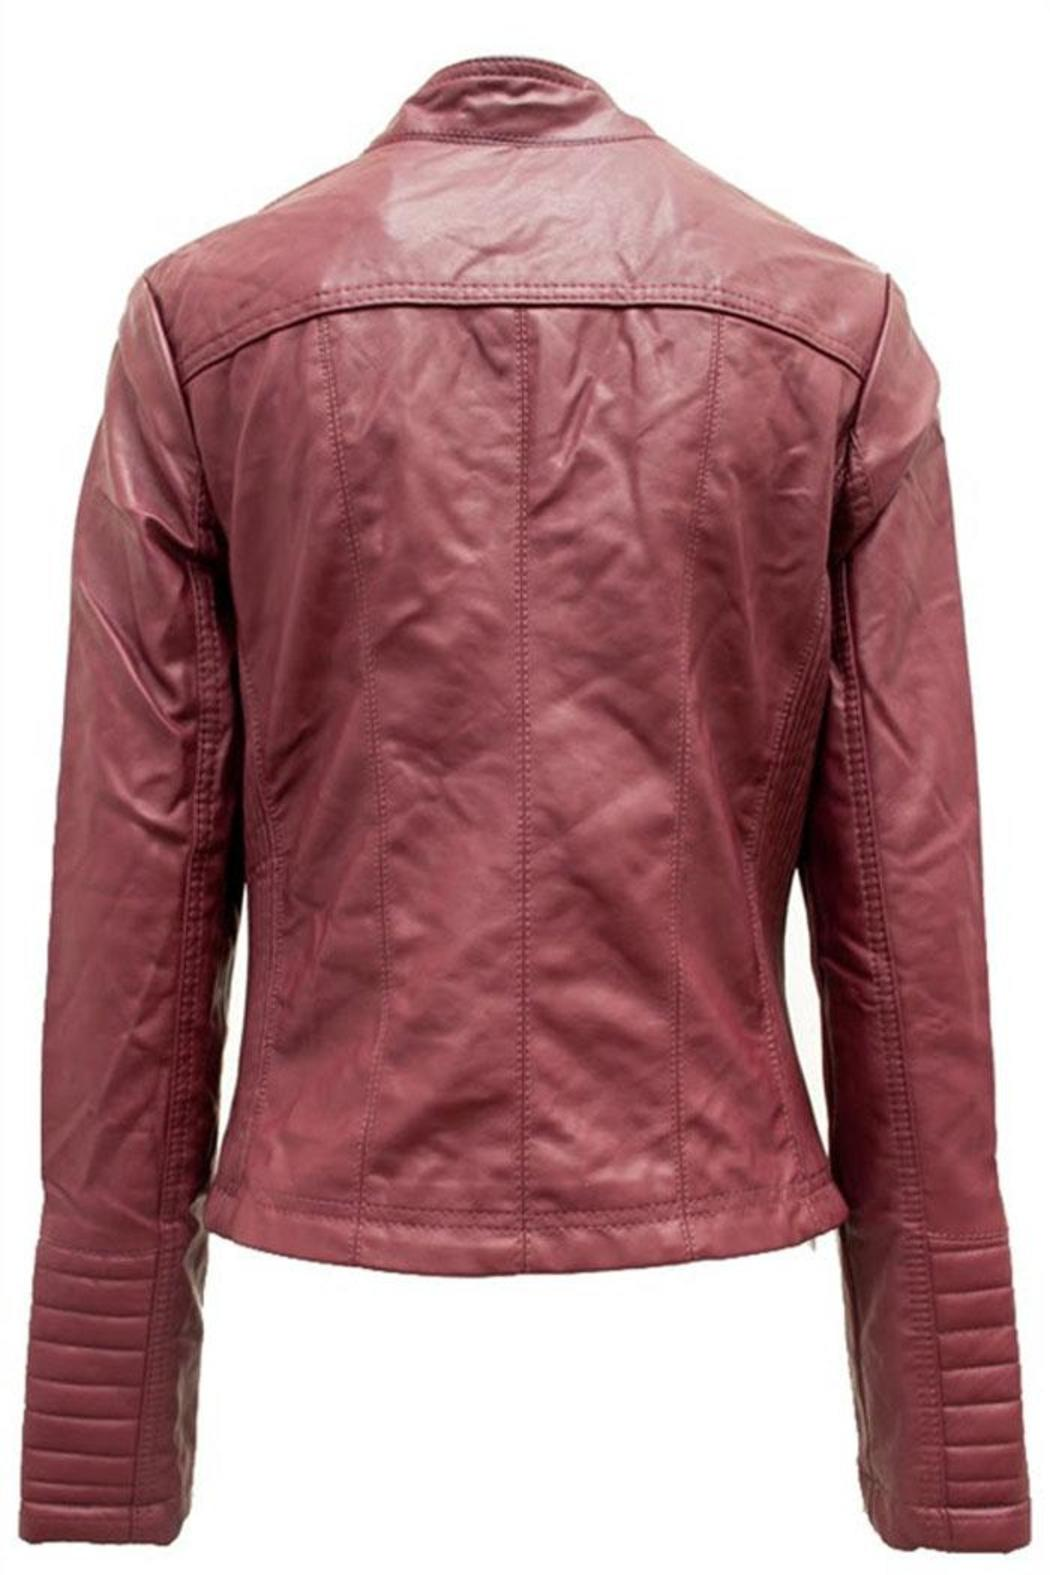 Leather jacket vancouver